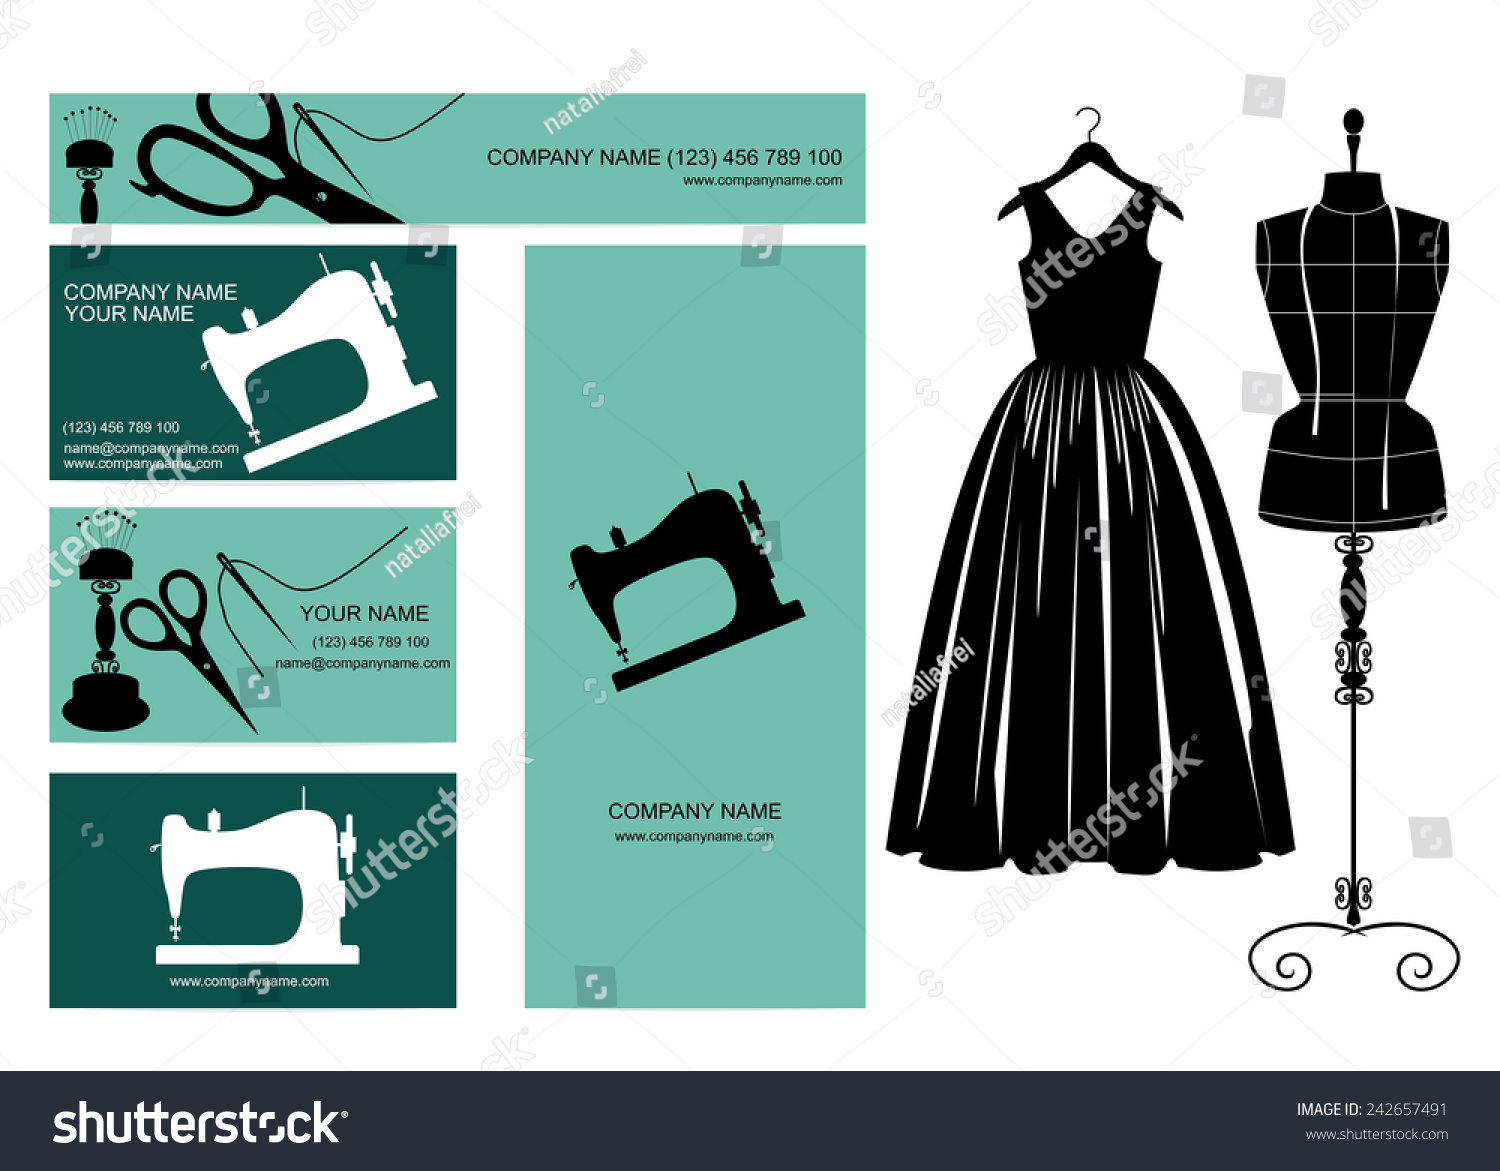 Business cards design dress dressmakers dummy stock vector business cards design dress and dressmakers dummy agents for textile representatives boutiques magicingreecefo Image collections